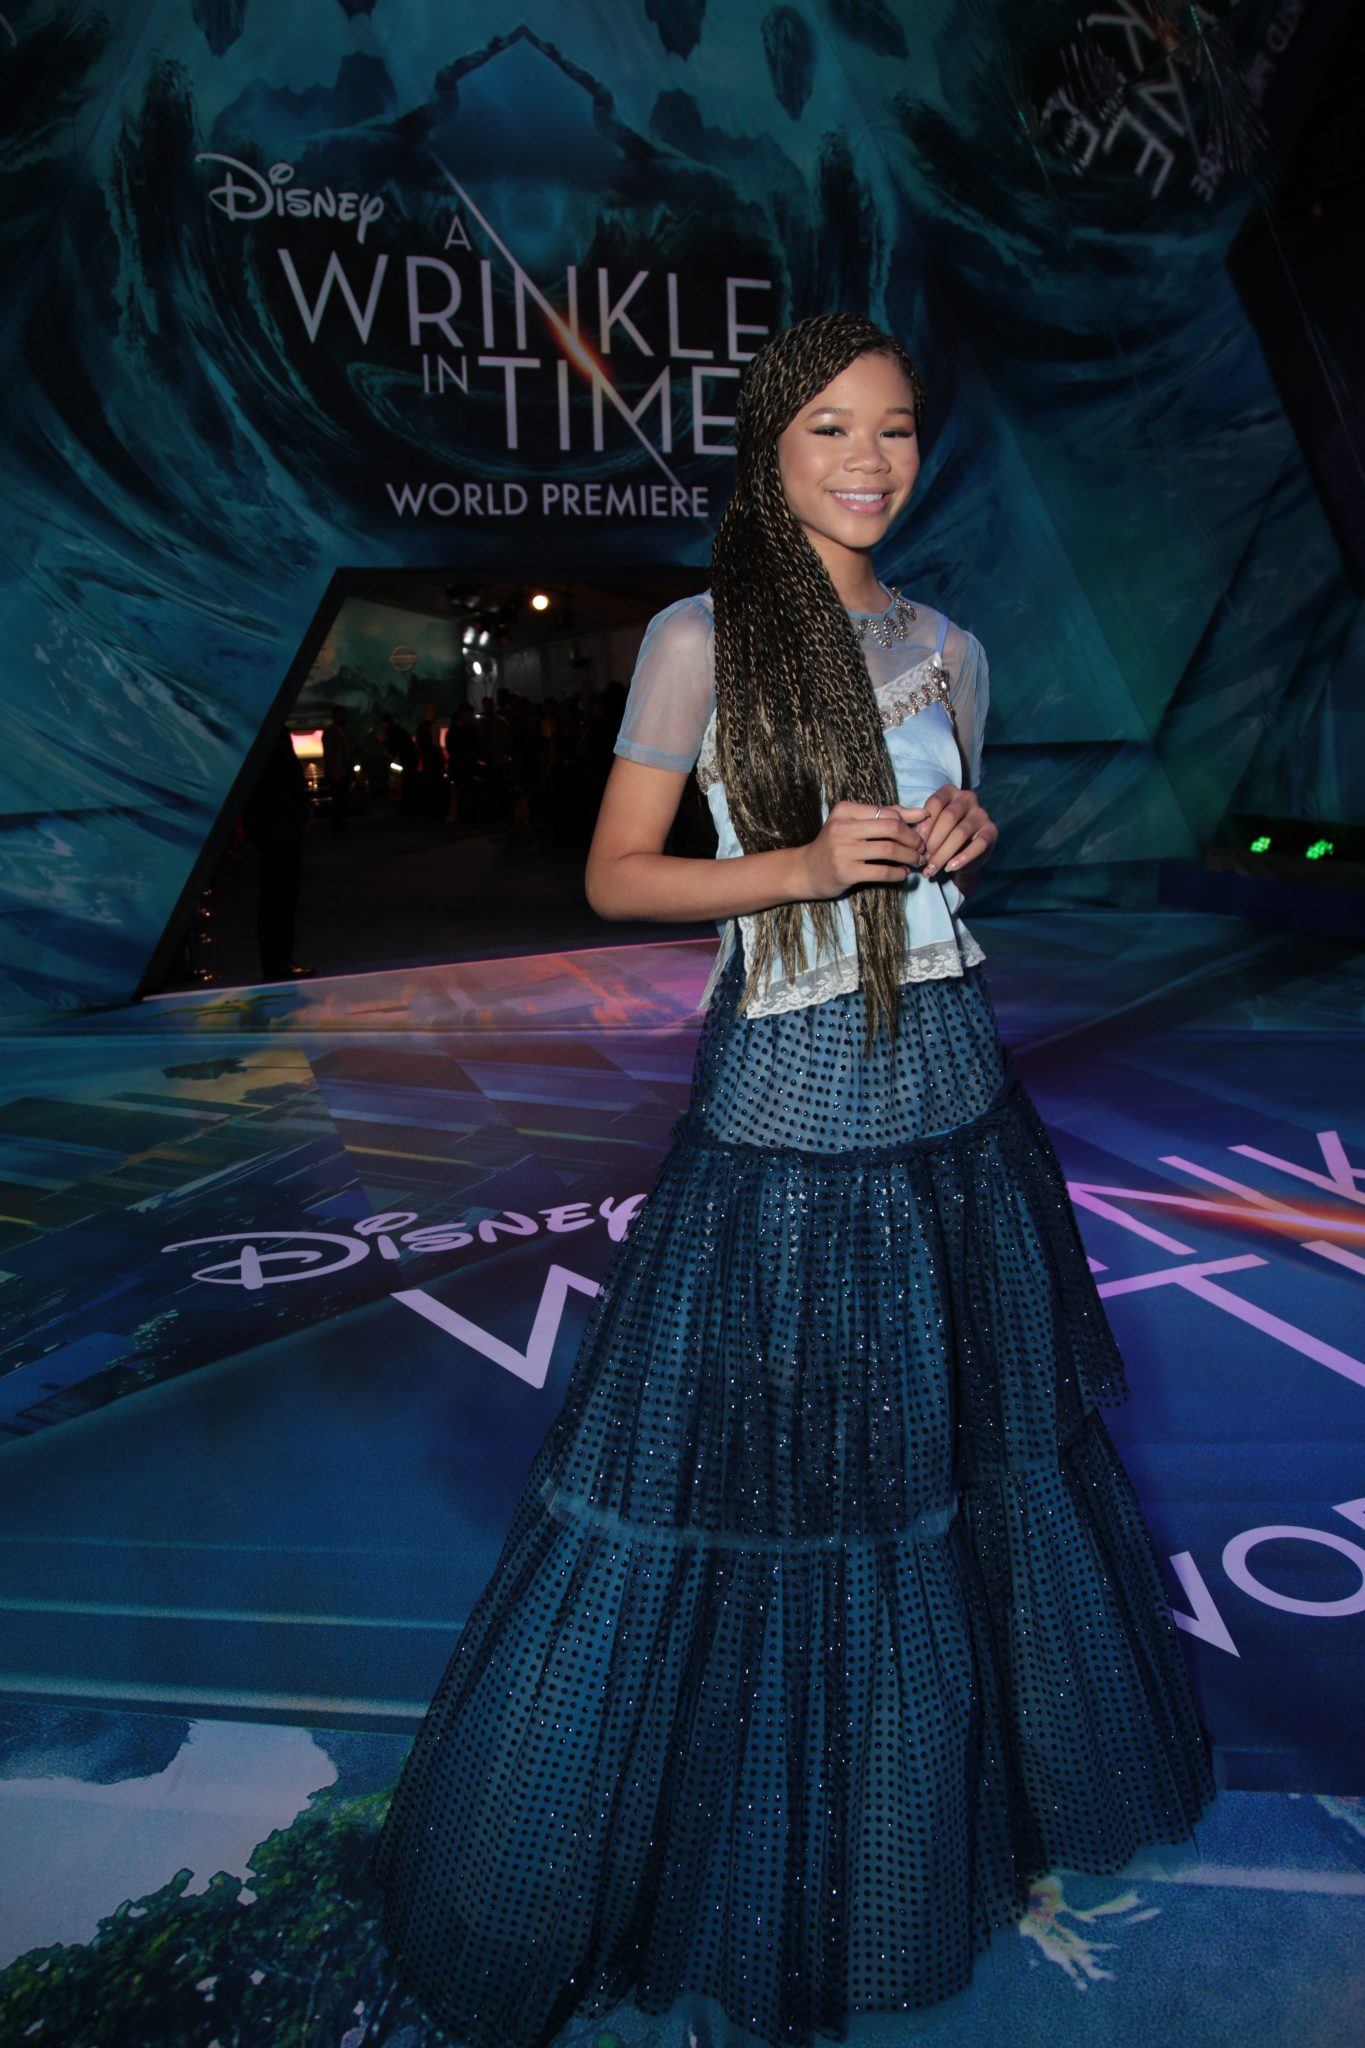 A Fun Interview With Actress Storm Reid From A Wrinkle In Time